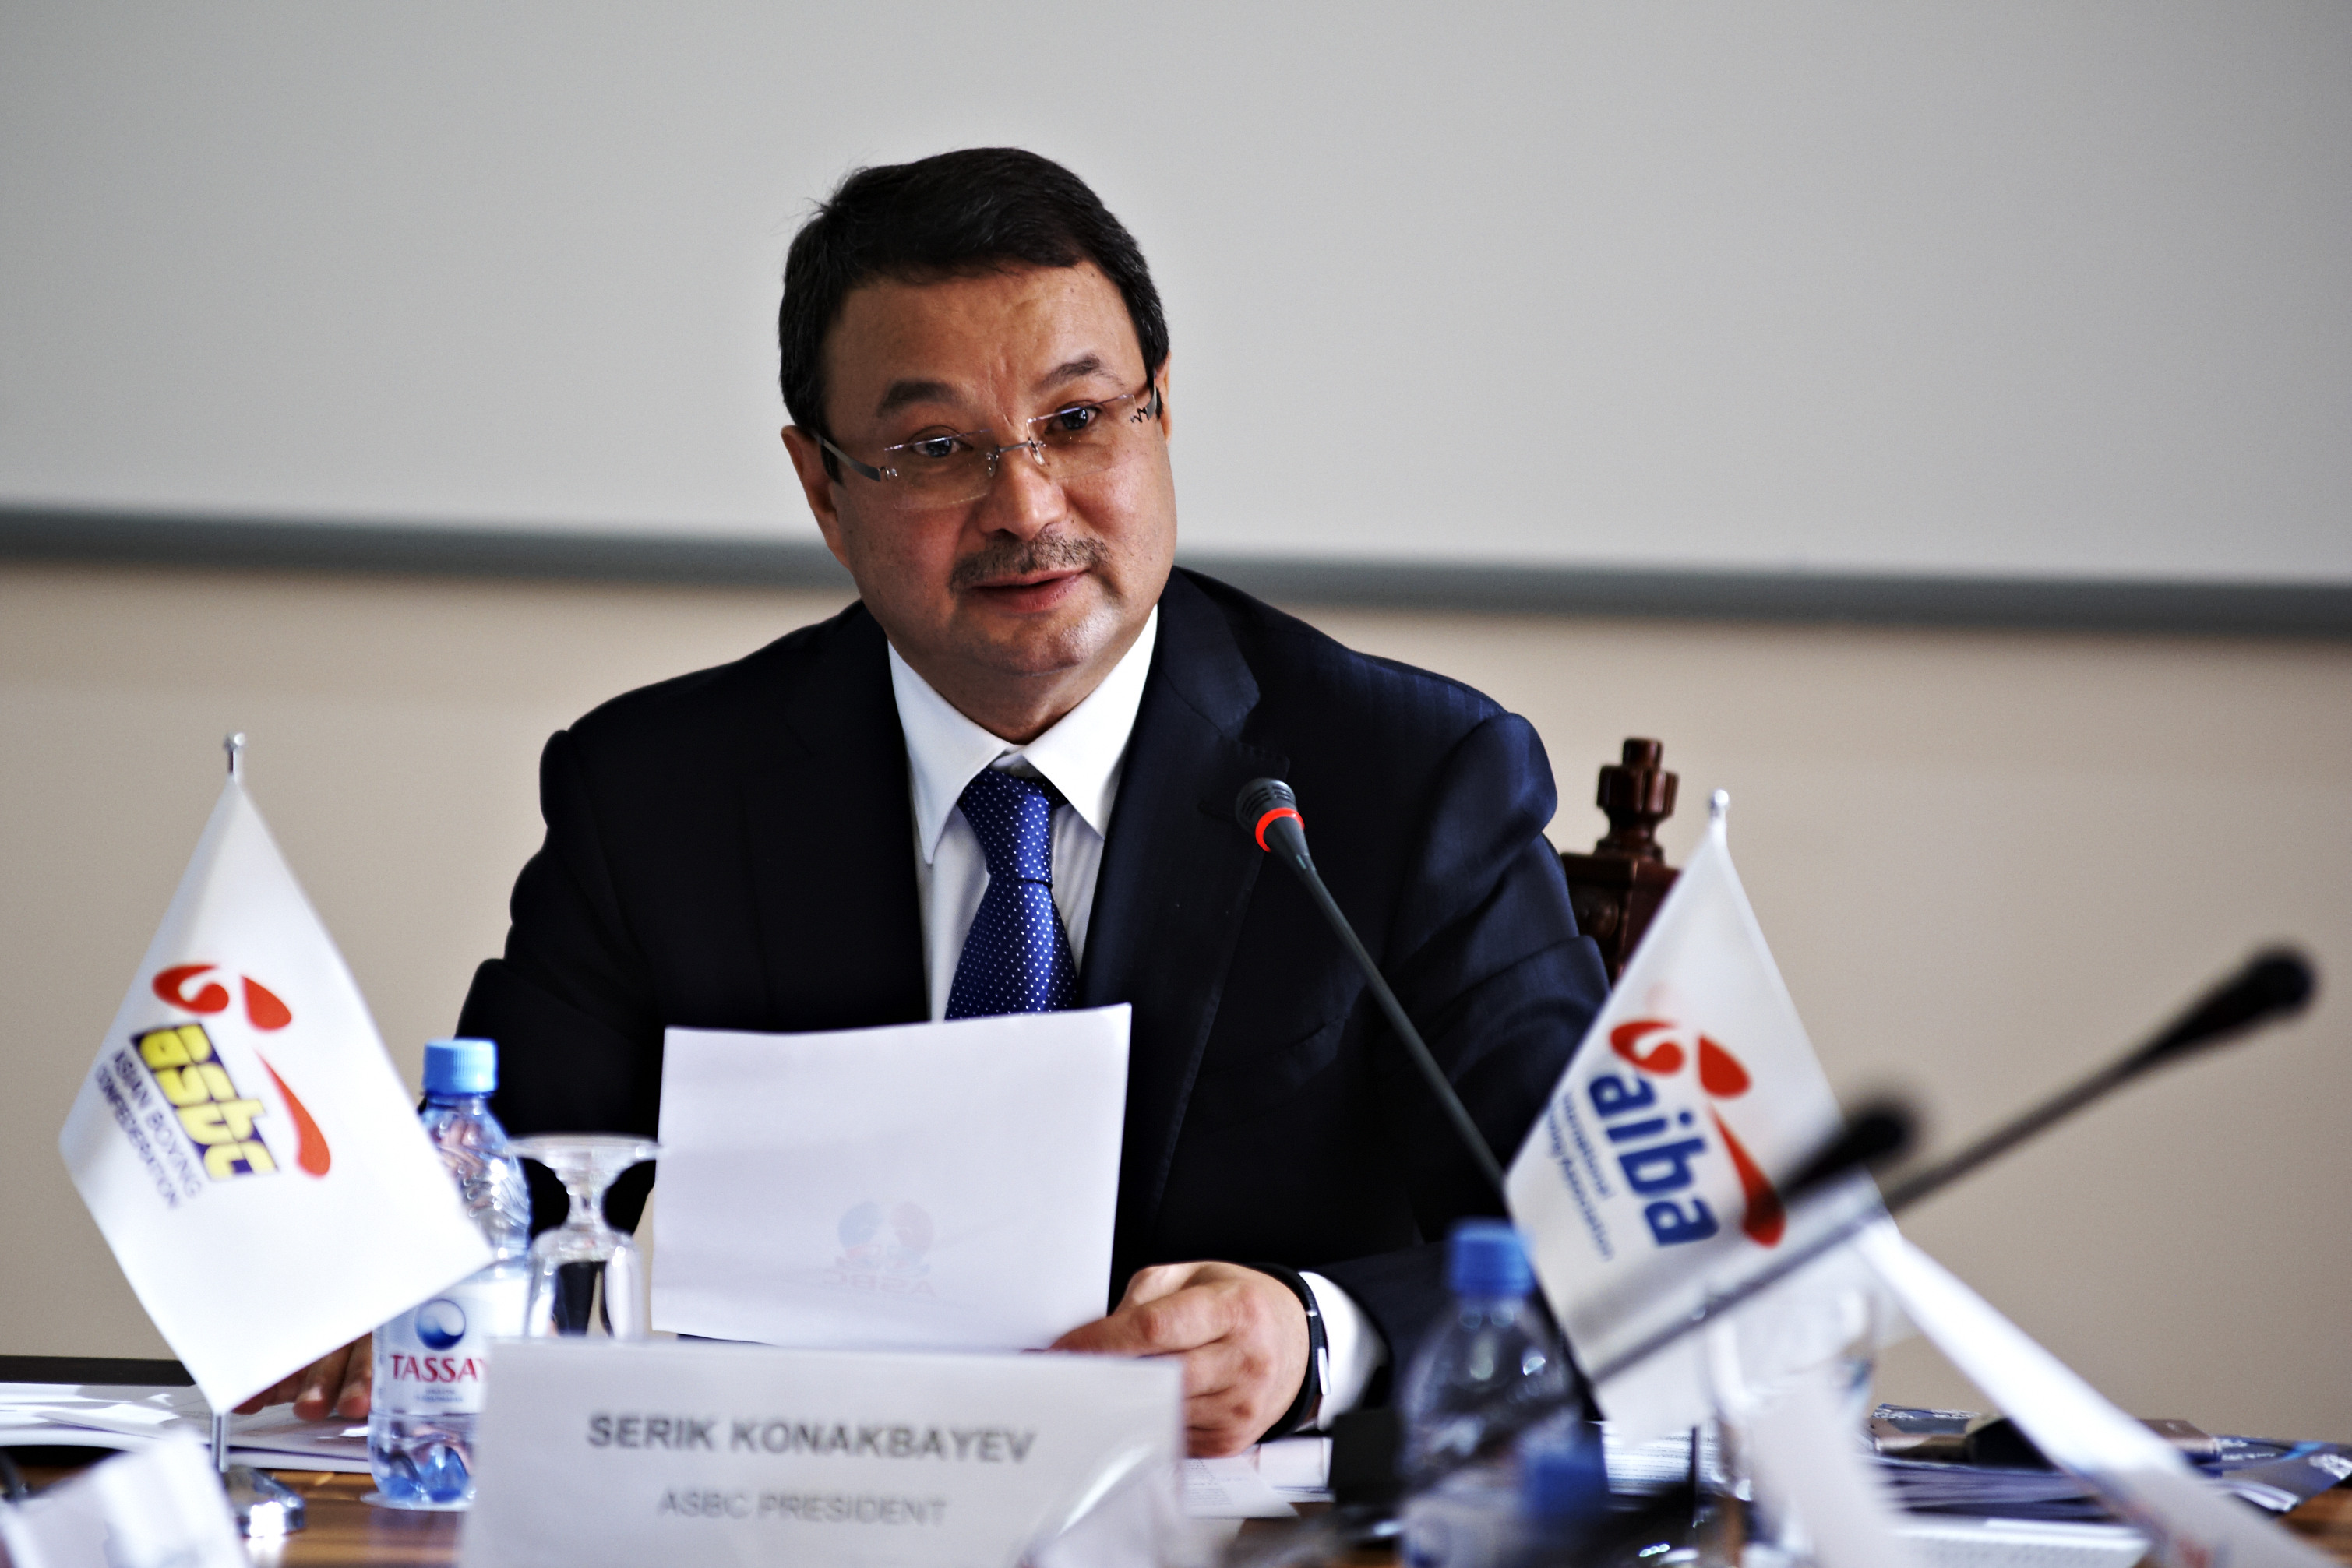 Mr. Serik Konakbayev – I am so grateful to the hard work and the strong commitment of the National Federations